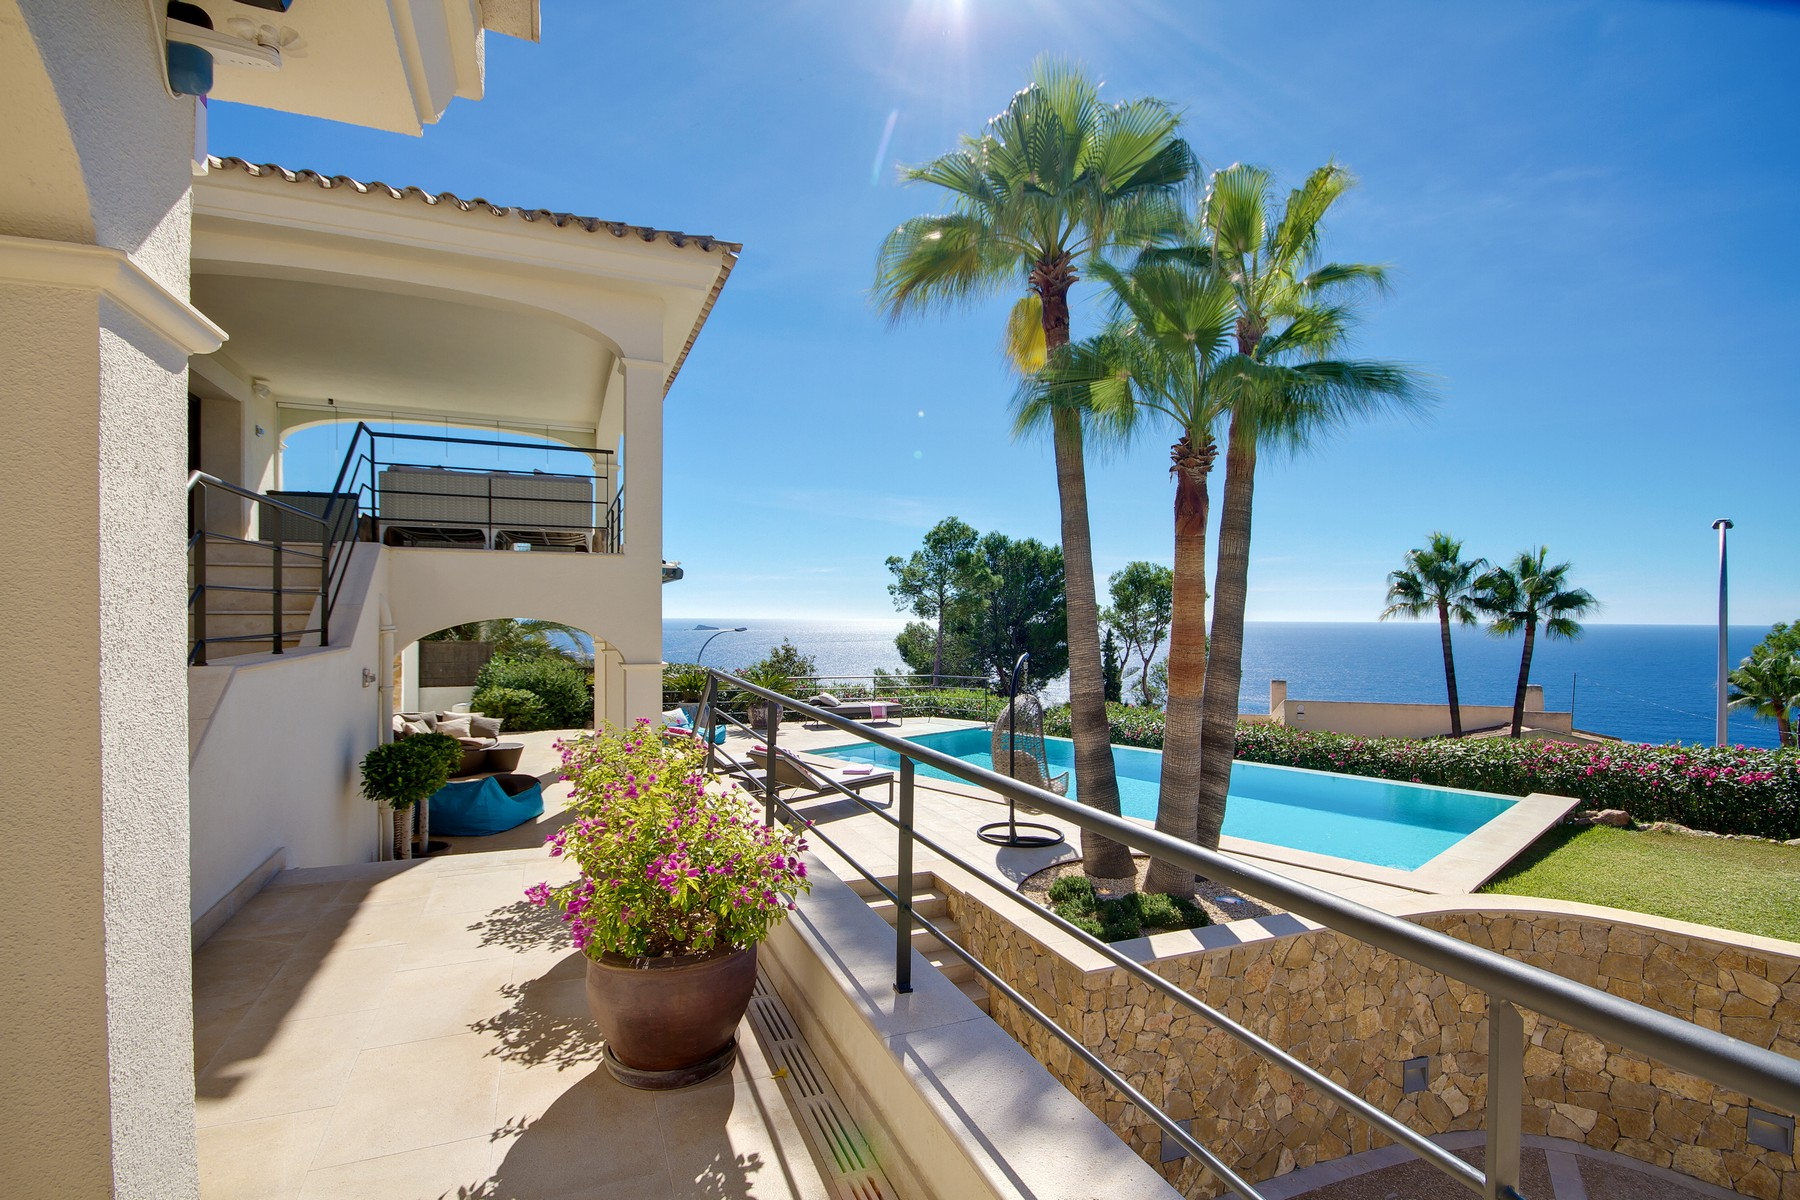 Single Family Home for Sale at Fully refurbished villa with panoramic views Port Adriano, Mallorca, 07180 Spain